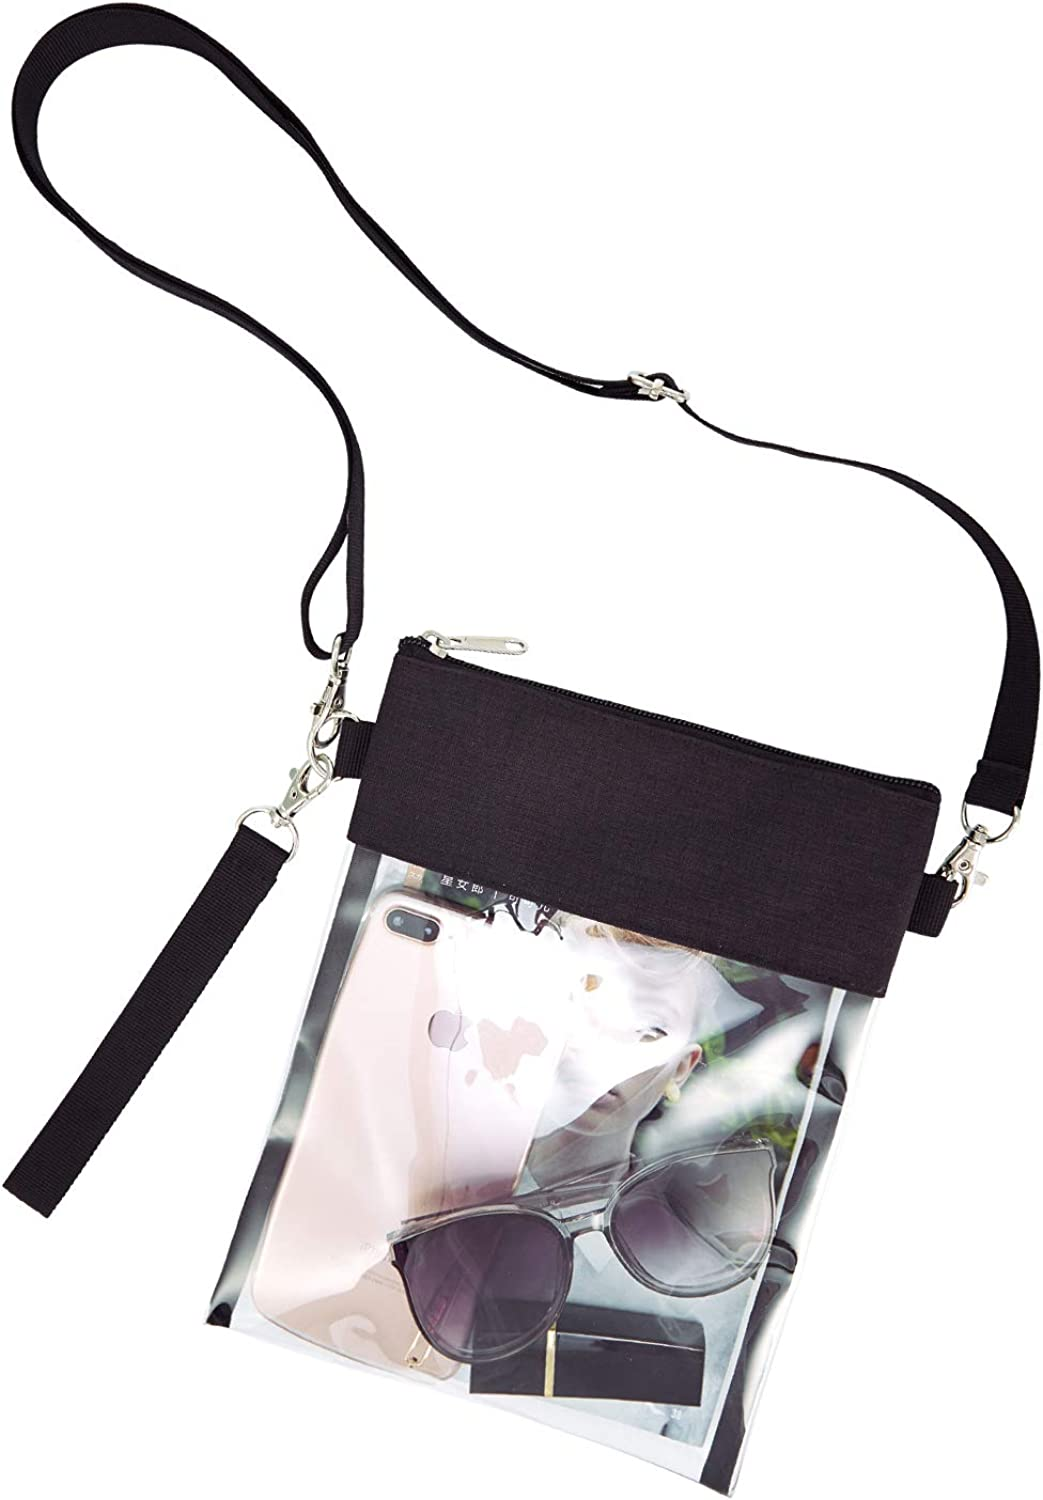 GreenPine Clear Crossbody Purse Bag - NFL,NCAA Stadium Approved Clear Tote Bag with Adjustable Shoulder Strap